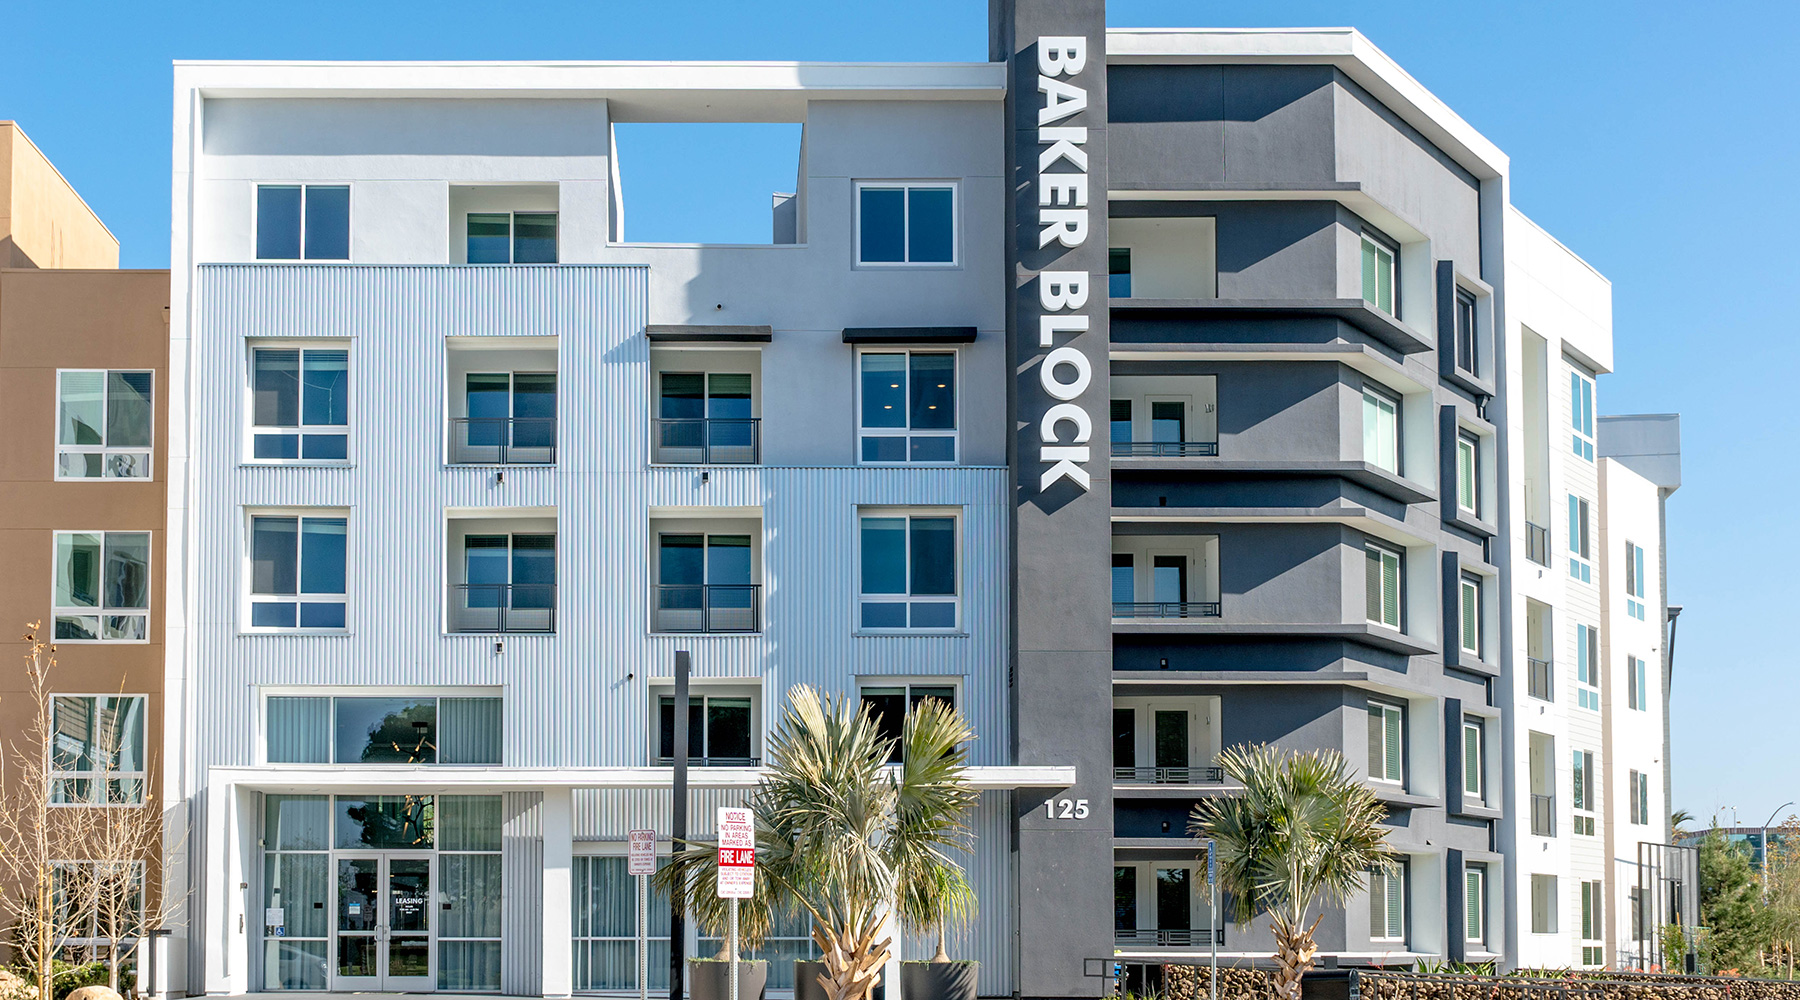 Baker Block Apartment, Costa Mesa, CA